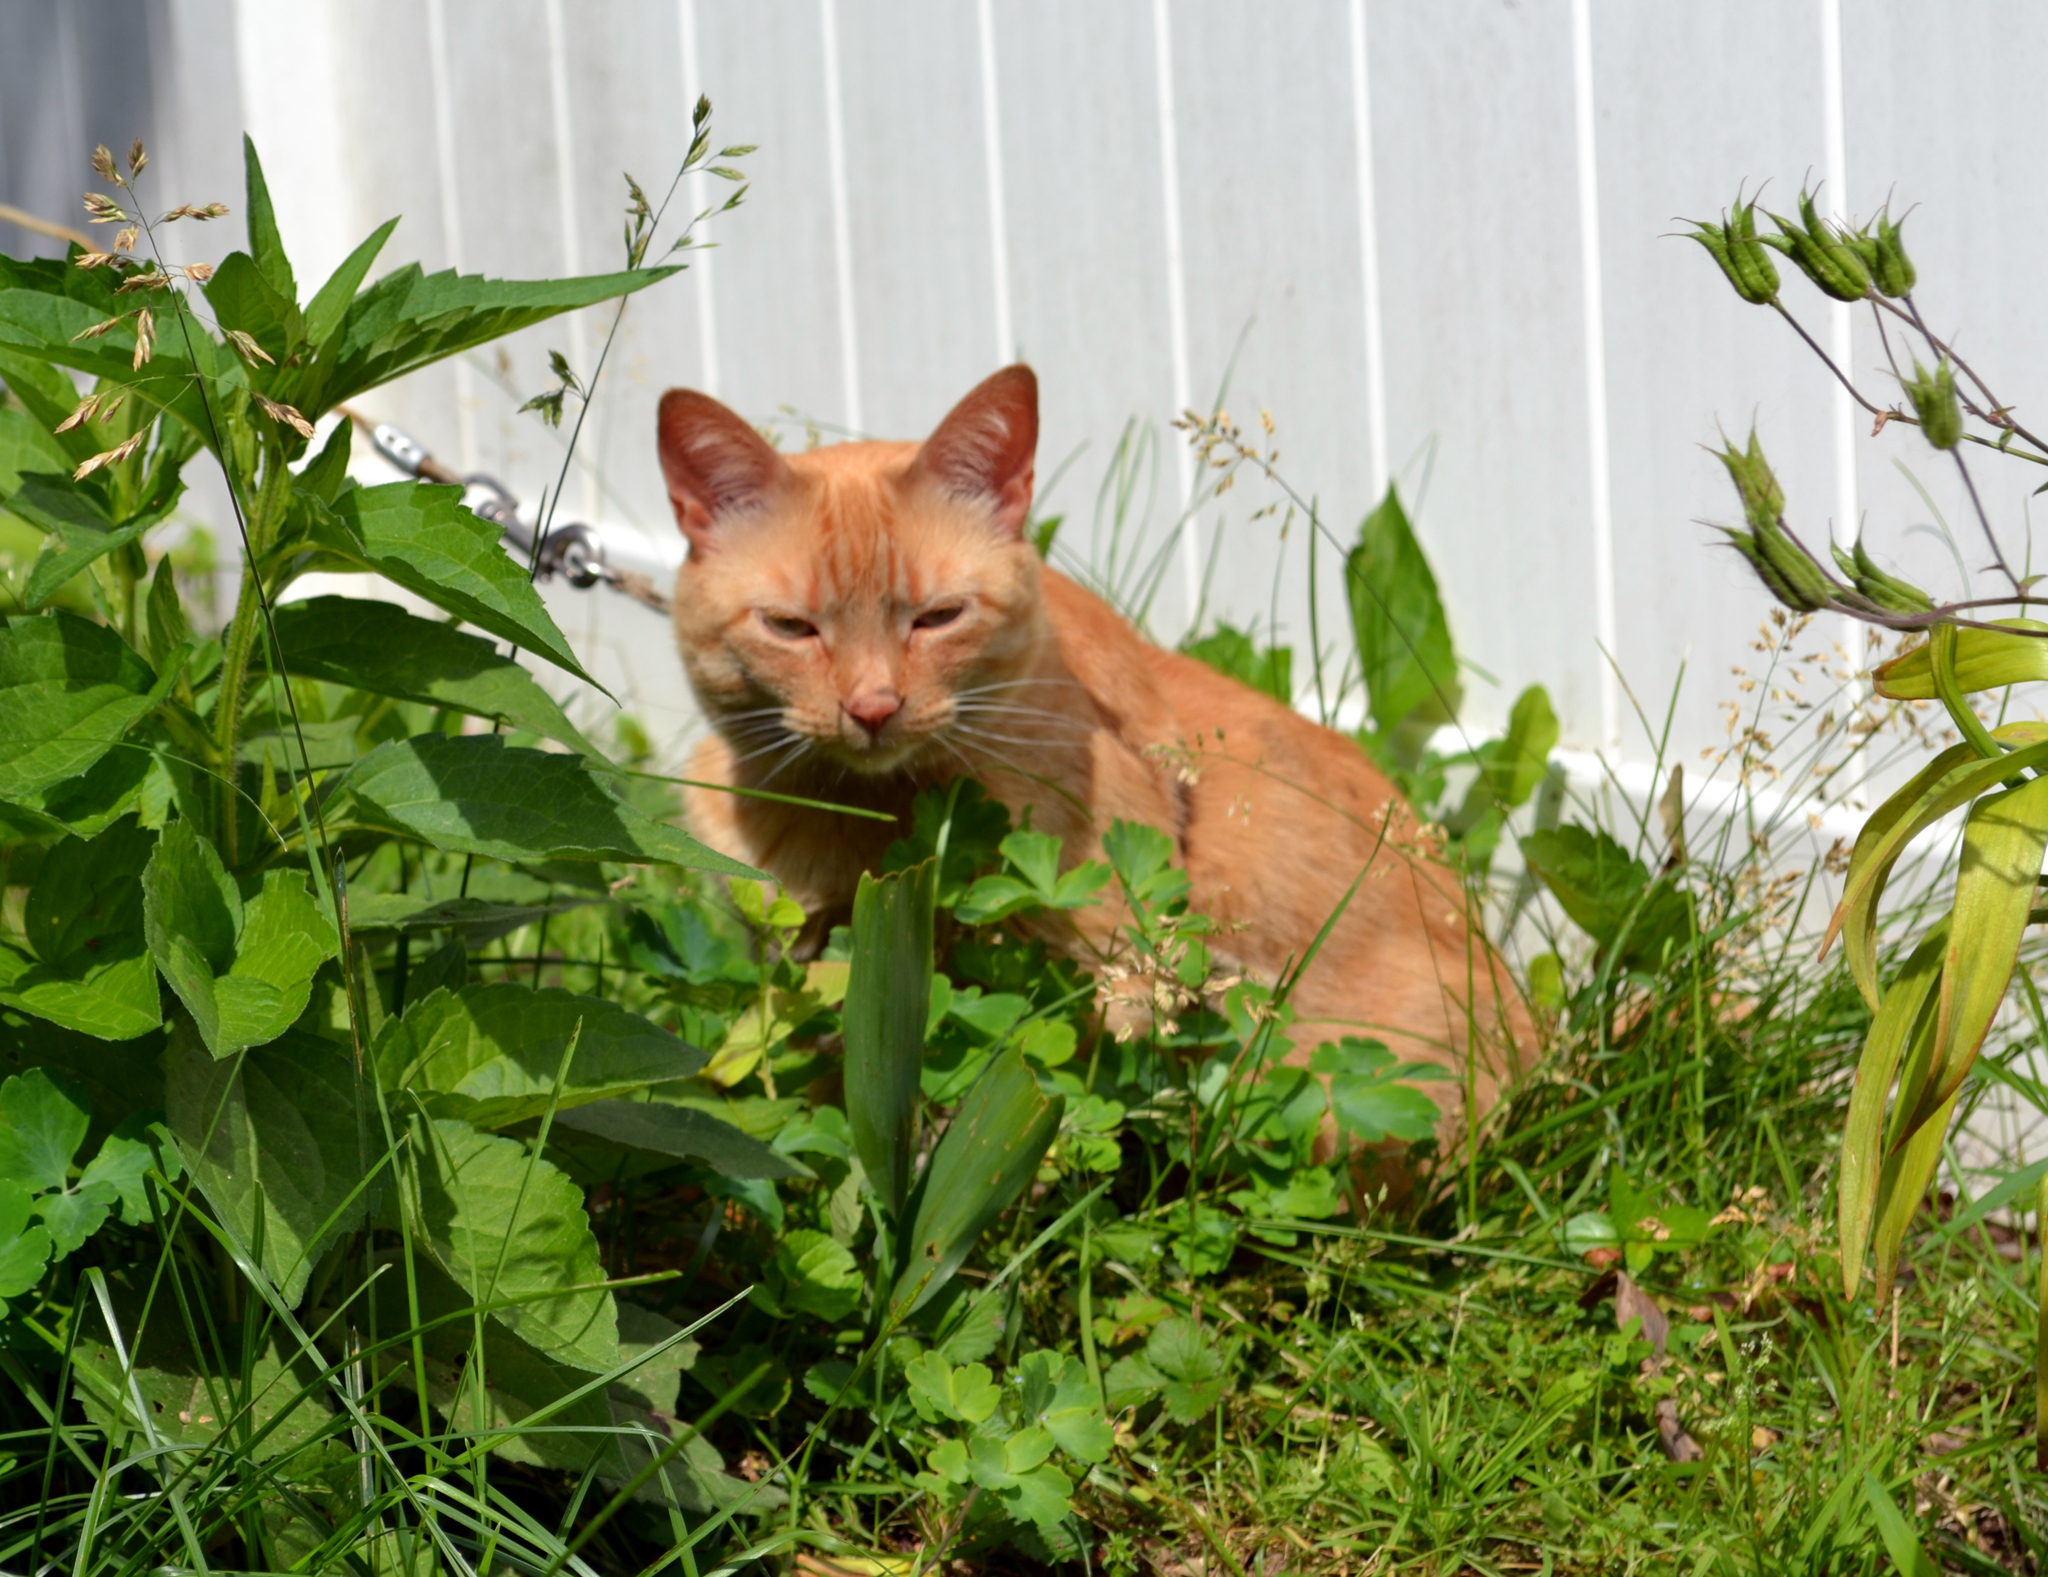 orange tabby cat Pecan in the garden